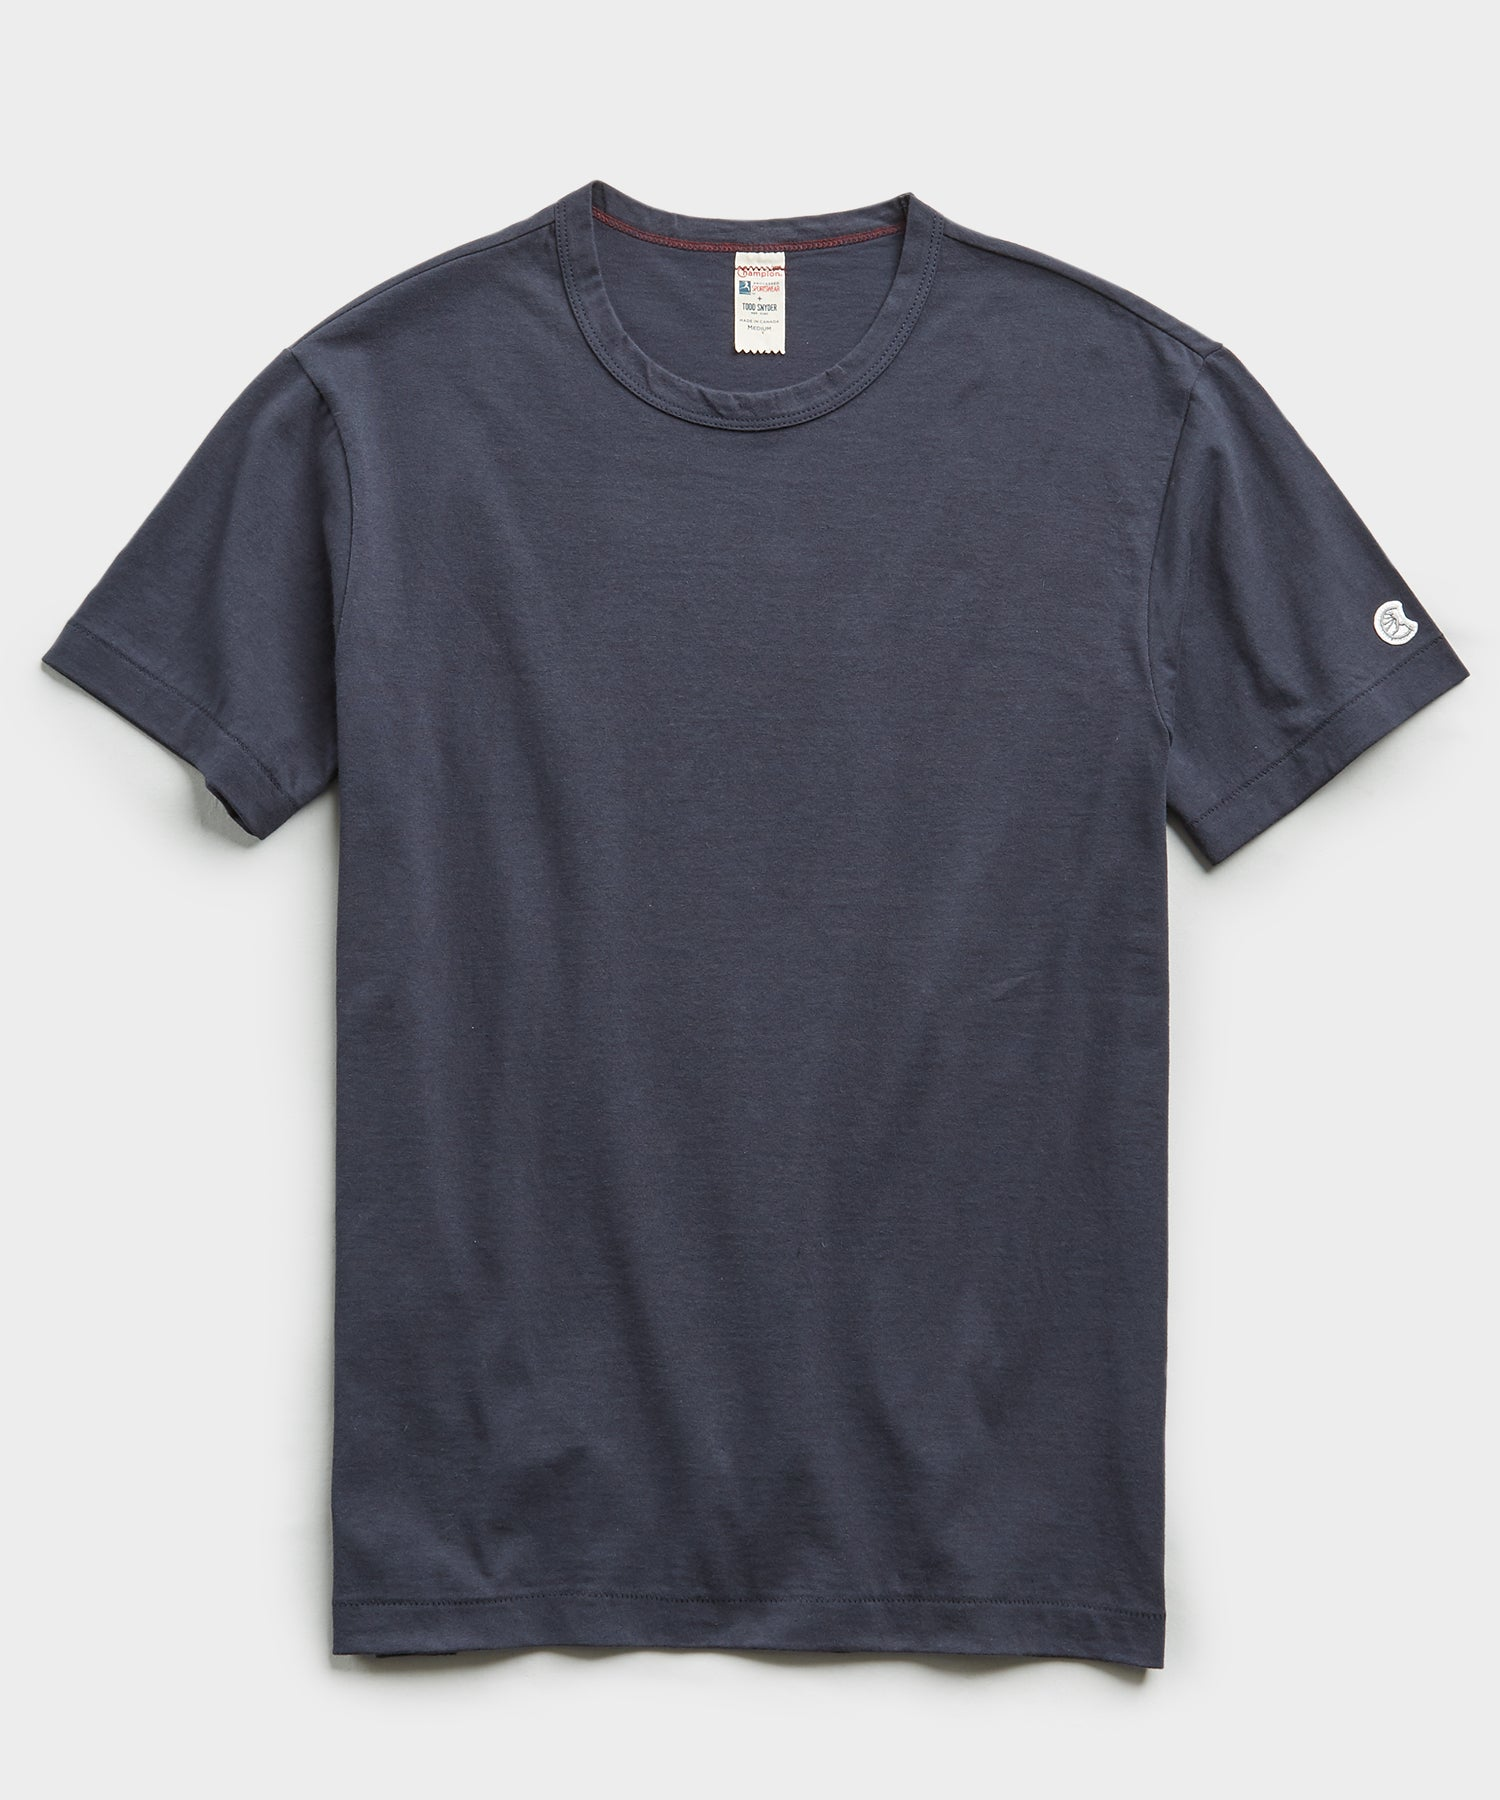 Champion Basic Jersey Tee in Navy